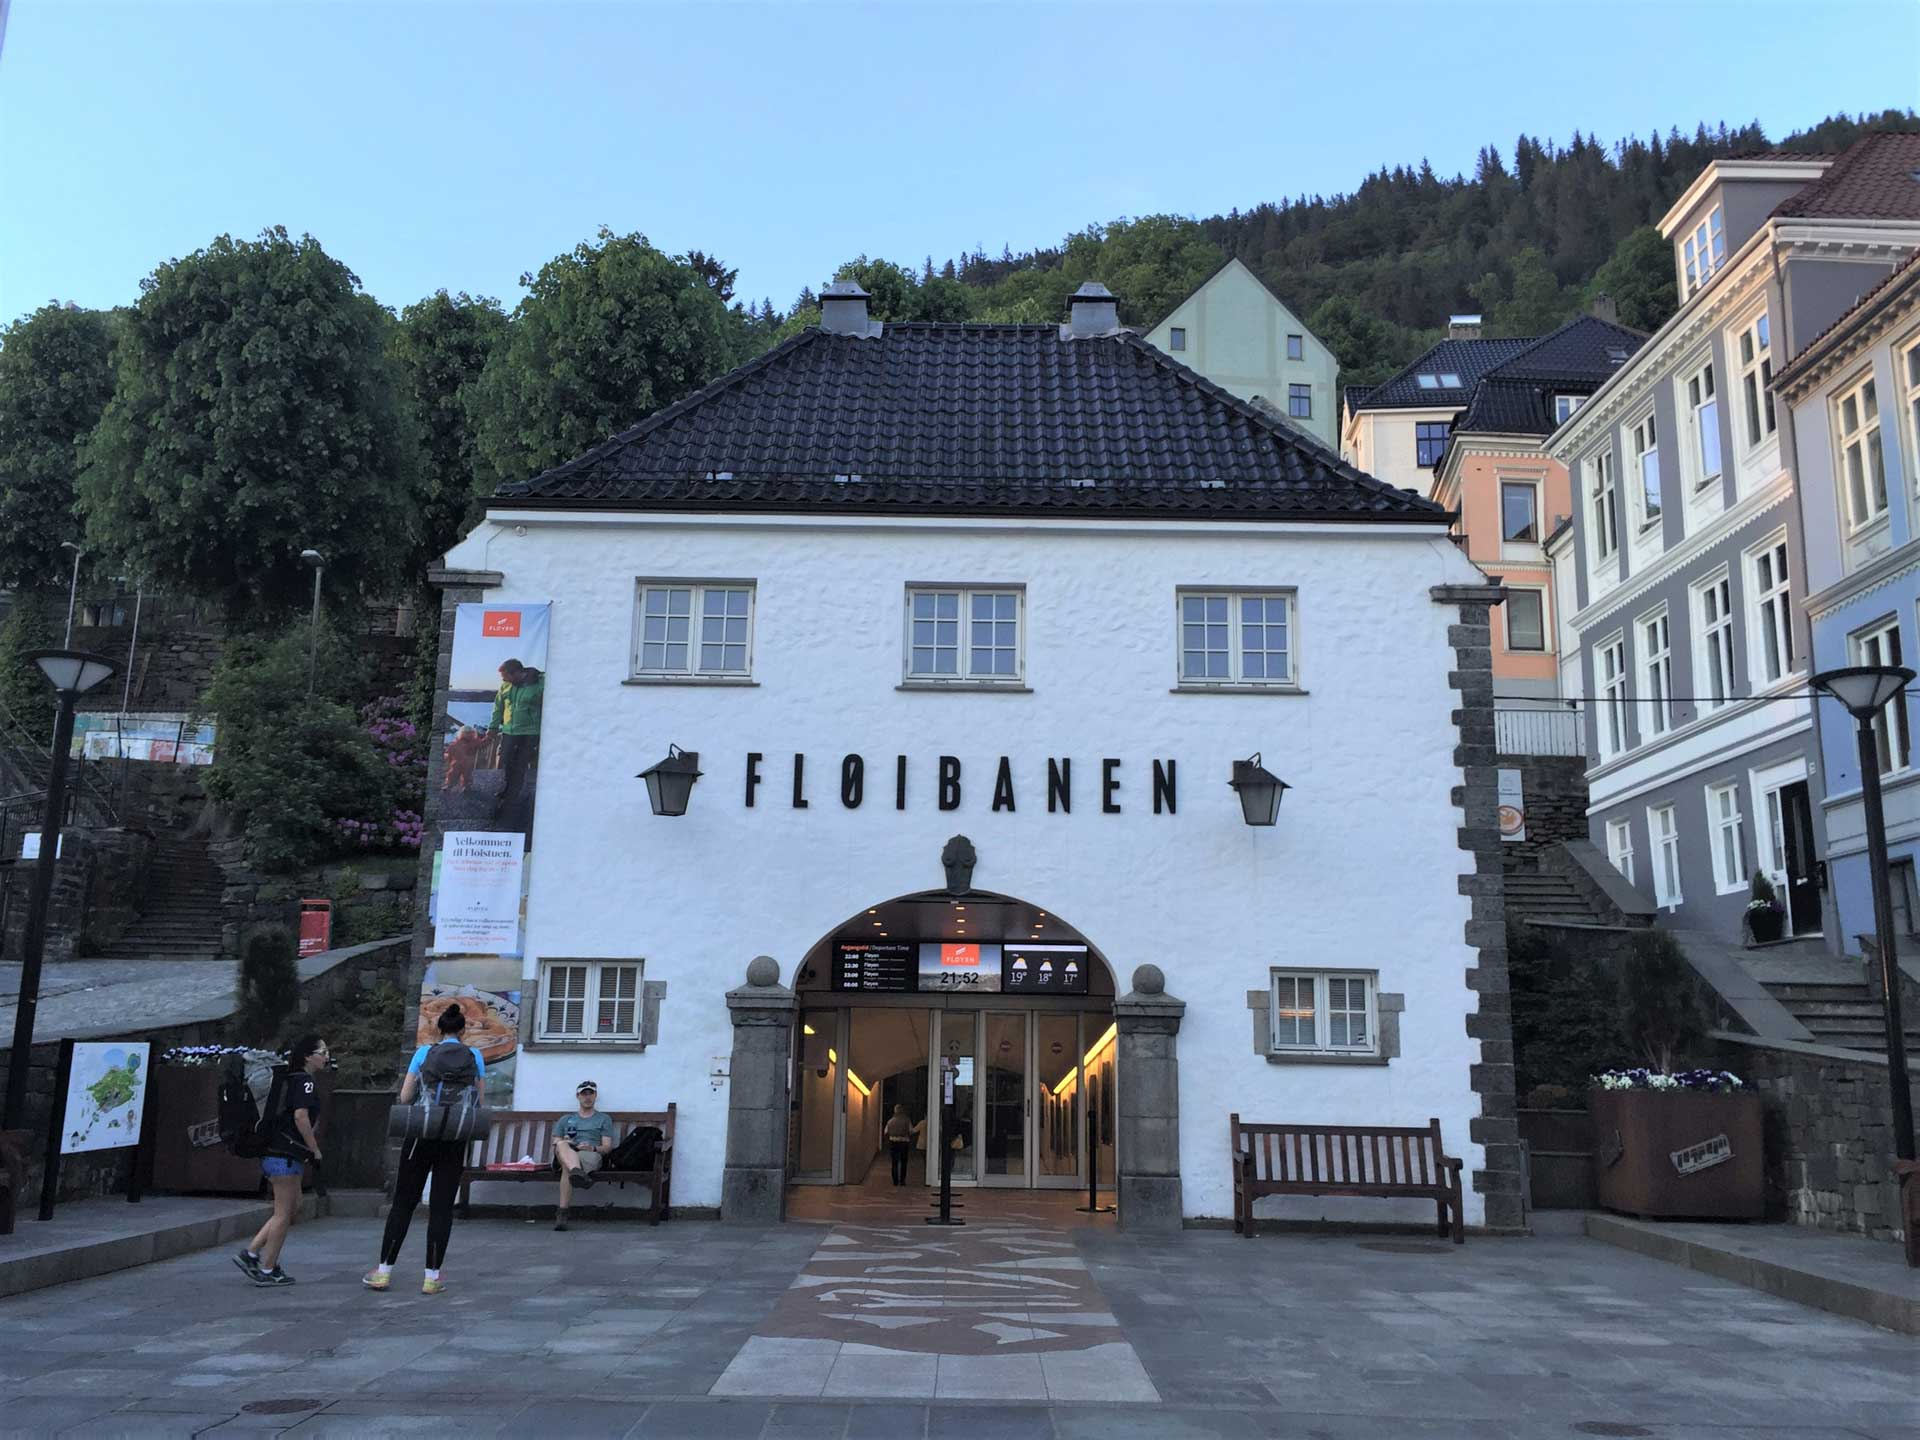 Fløibanen station in the city centre of Bergen, Norway